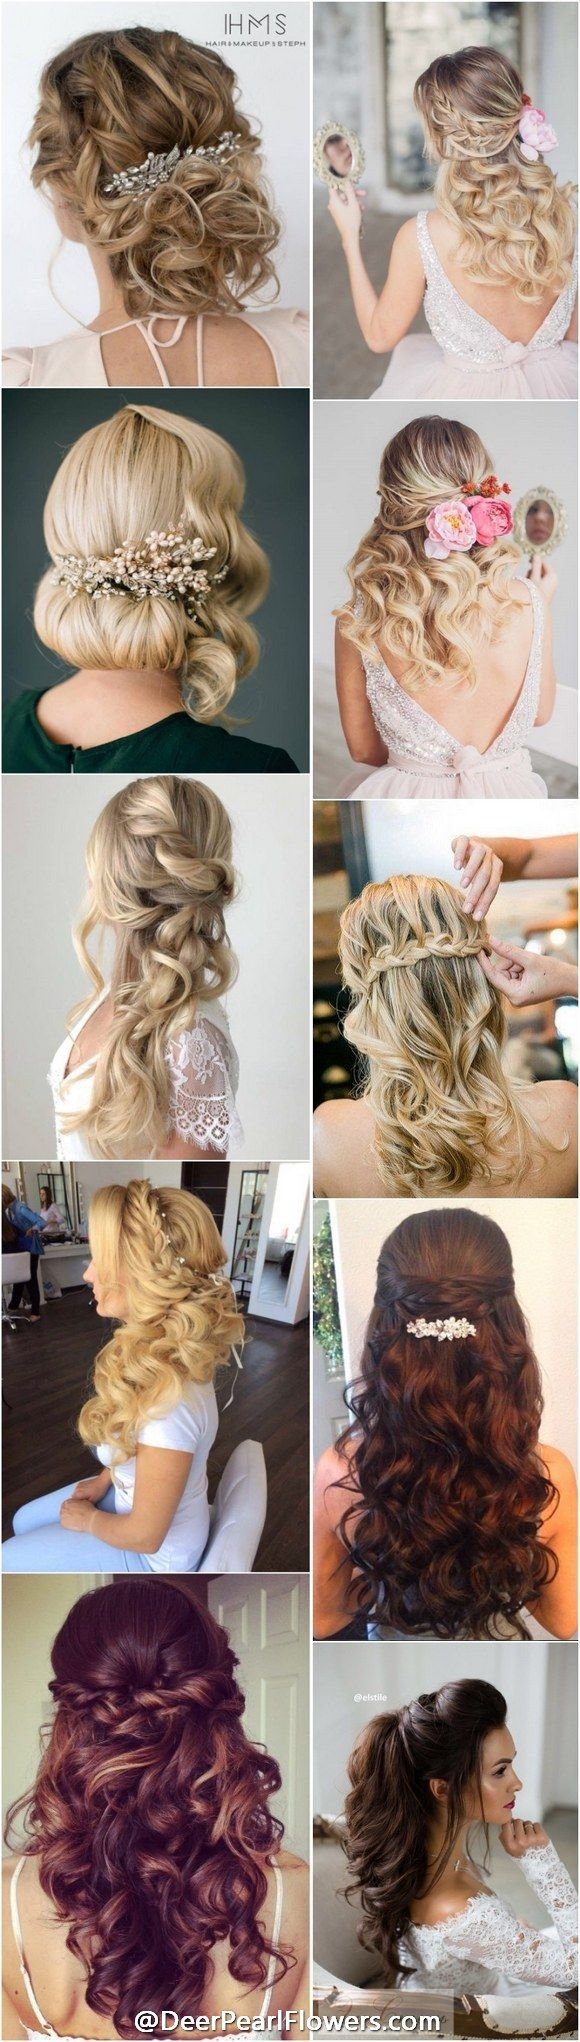 1000+ Wedding Hairstyles for Long Hair | www.deerpearlflow...